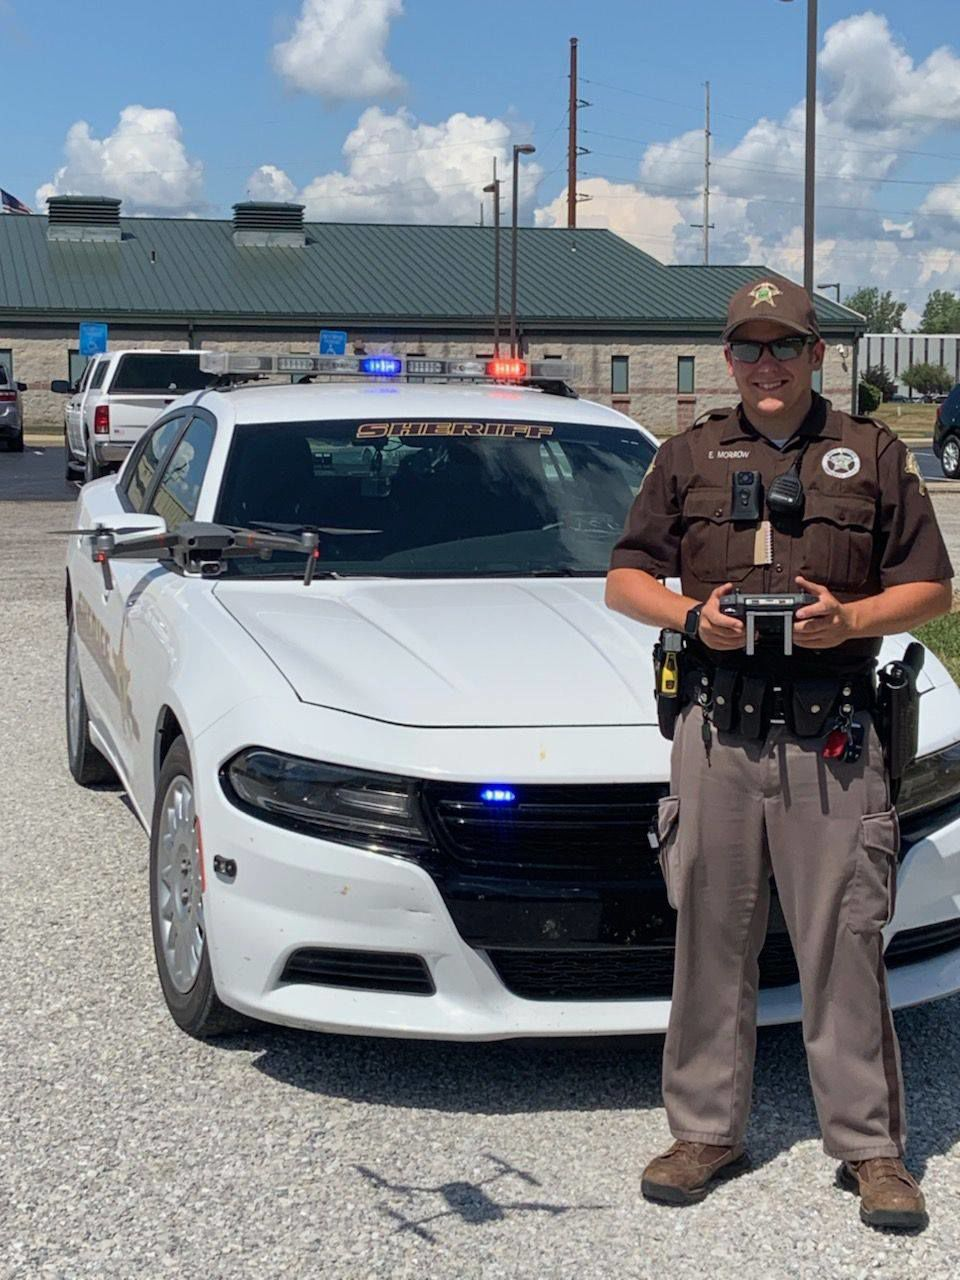 New drone boosts sheriff's department capabilities | Local